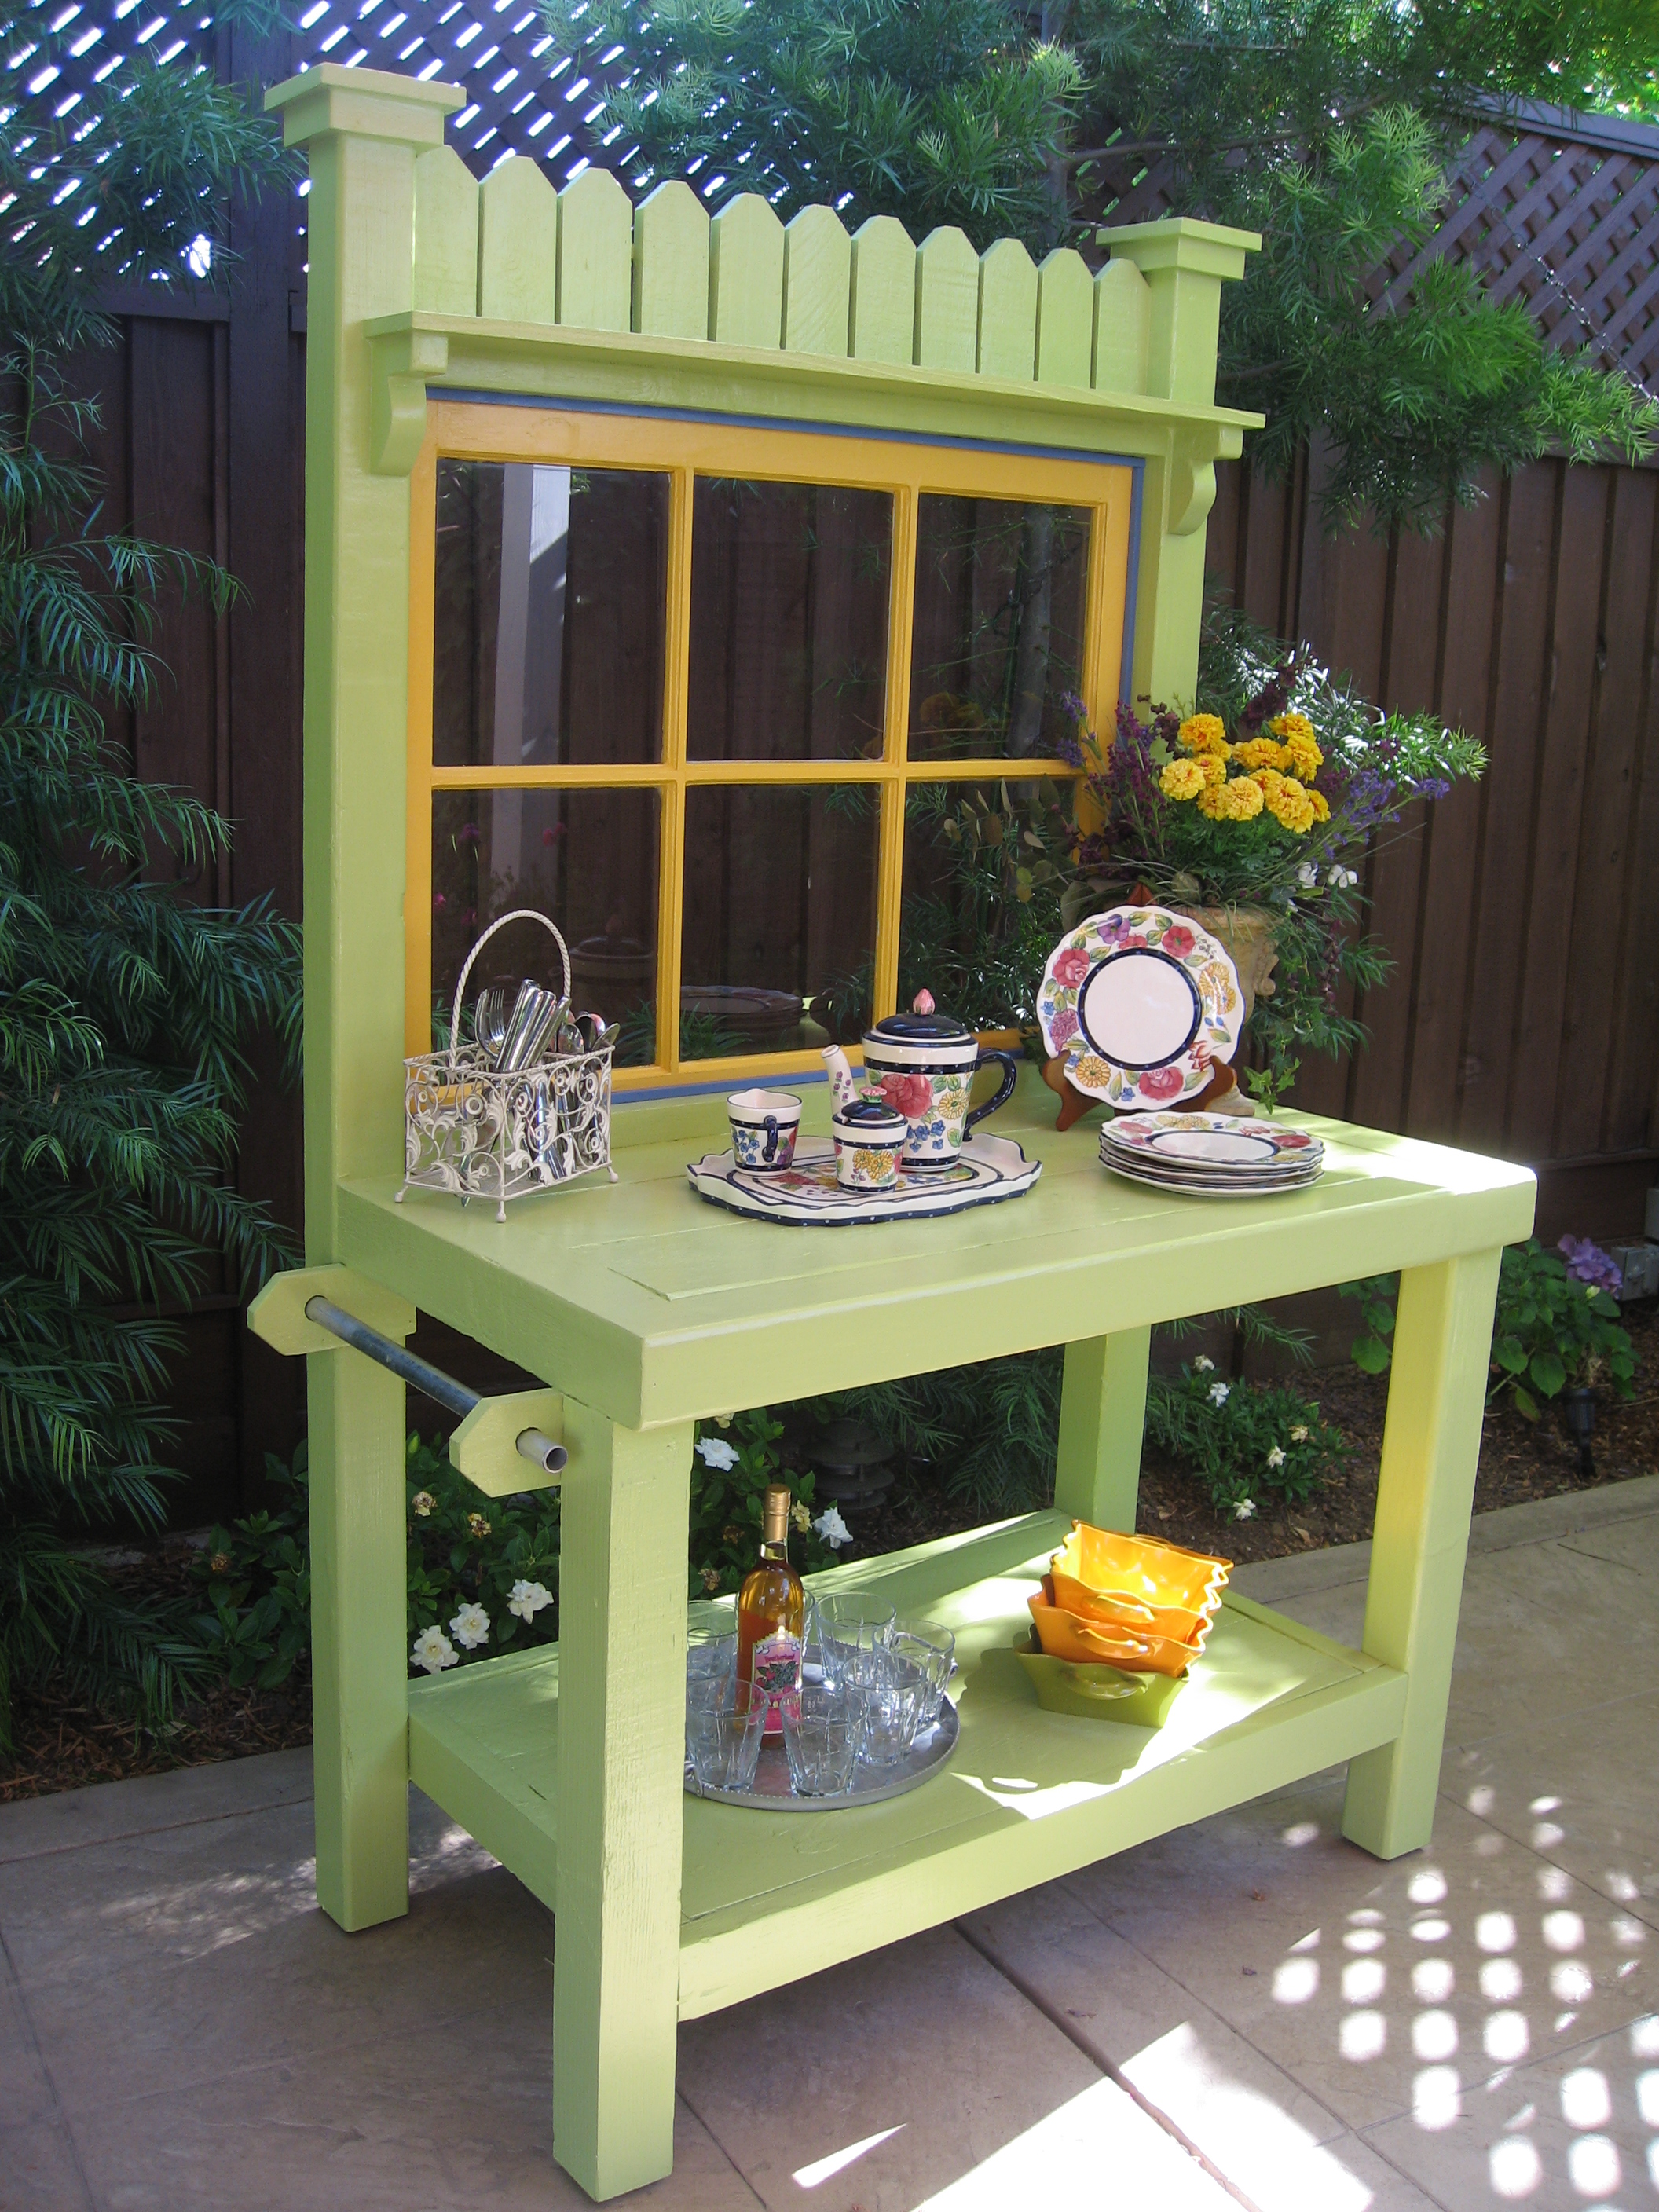 The Old Potting Bench San Jose Custom Designed Outdoor Decor